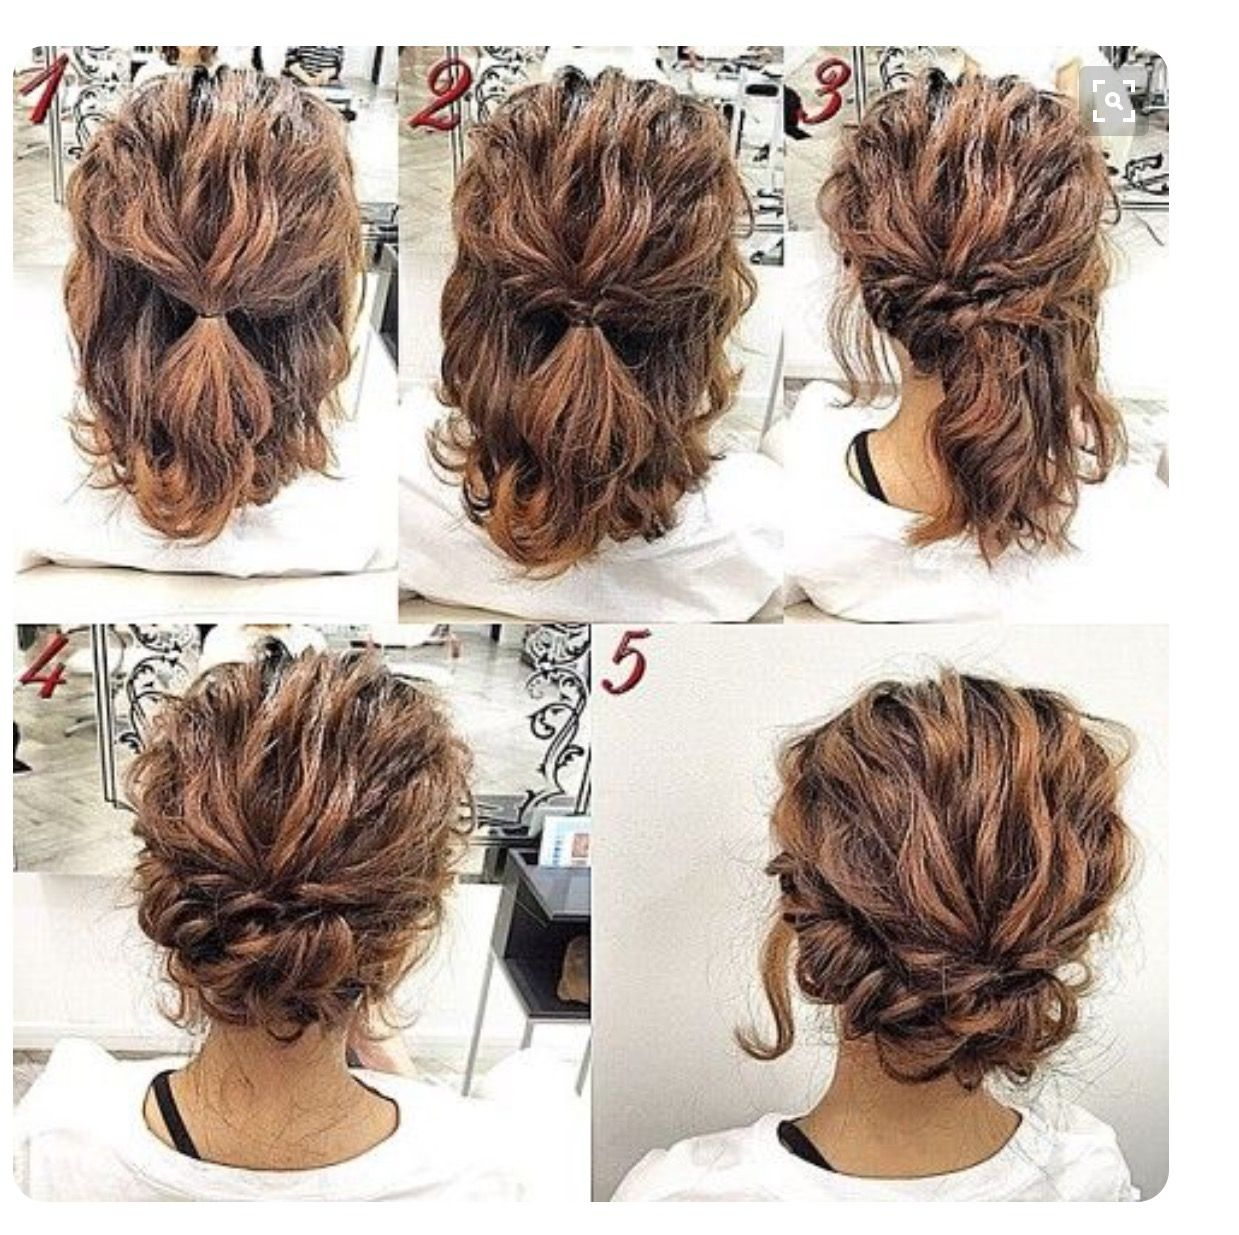 Perfectly Messy Updo Hair Styles Simple Prom Hair Short Hair Tutorial